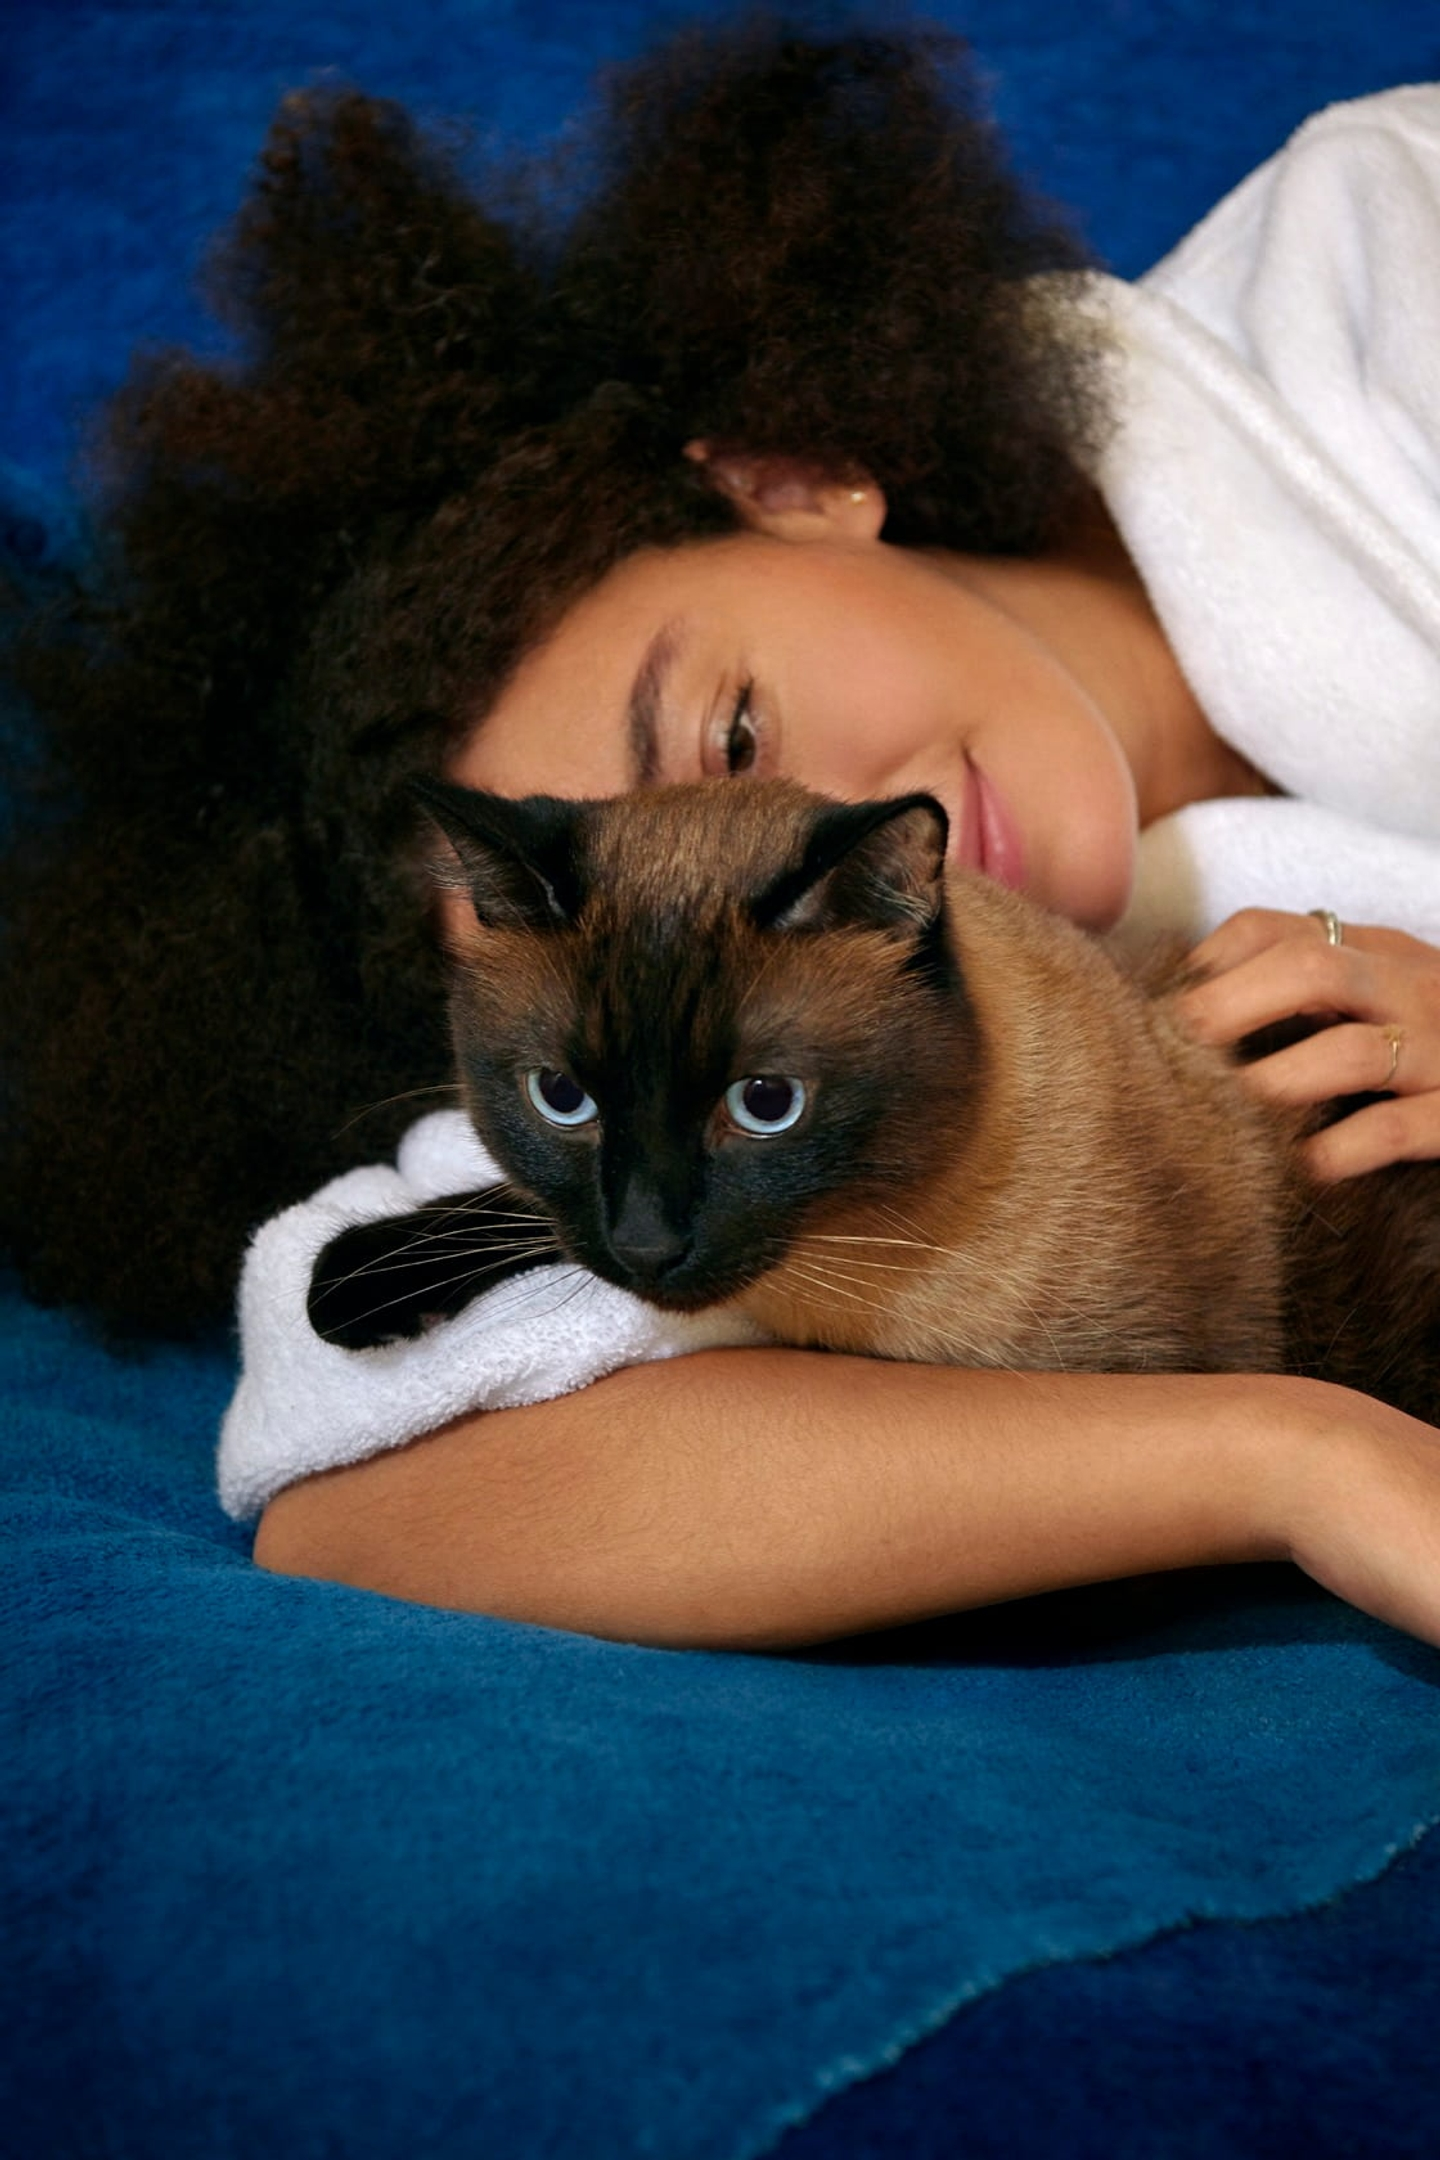 Woman in white bathrobe holding and petting her Siamese cat